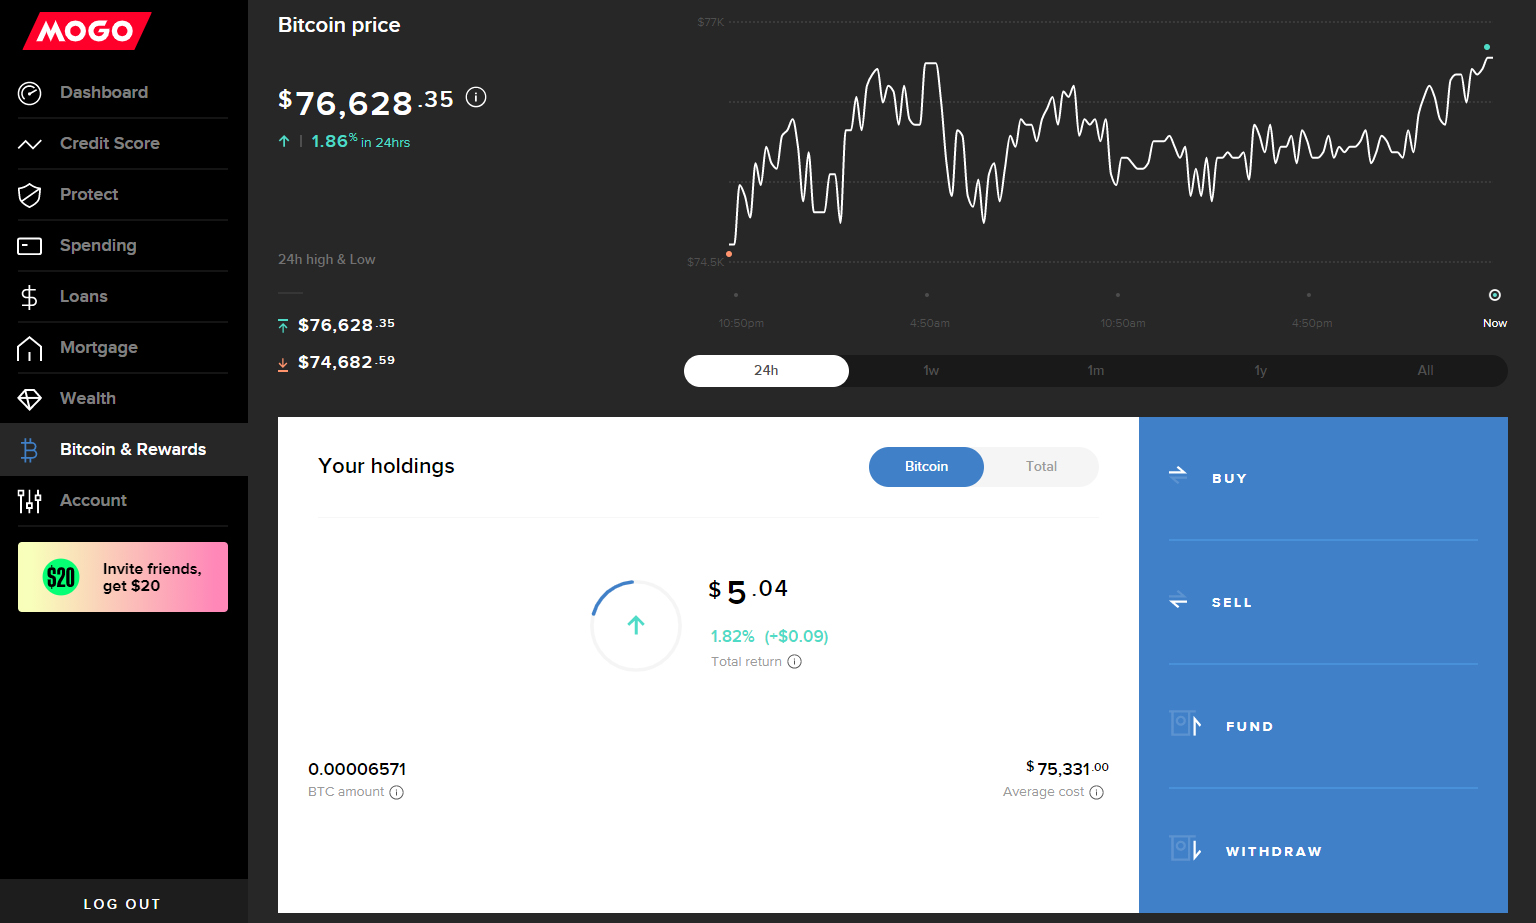 Mogo's Desktop Bitcoin Dashboard